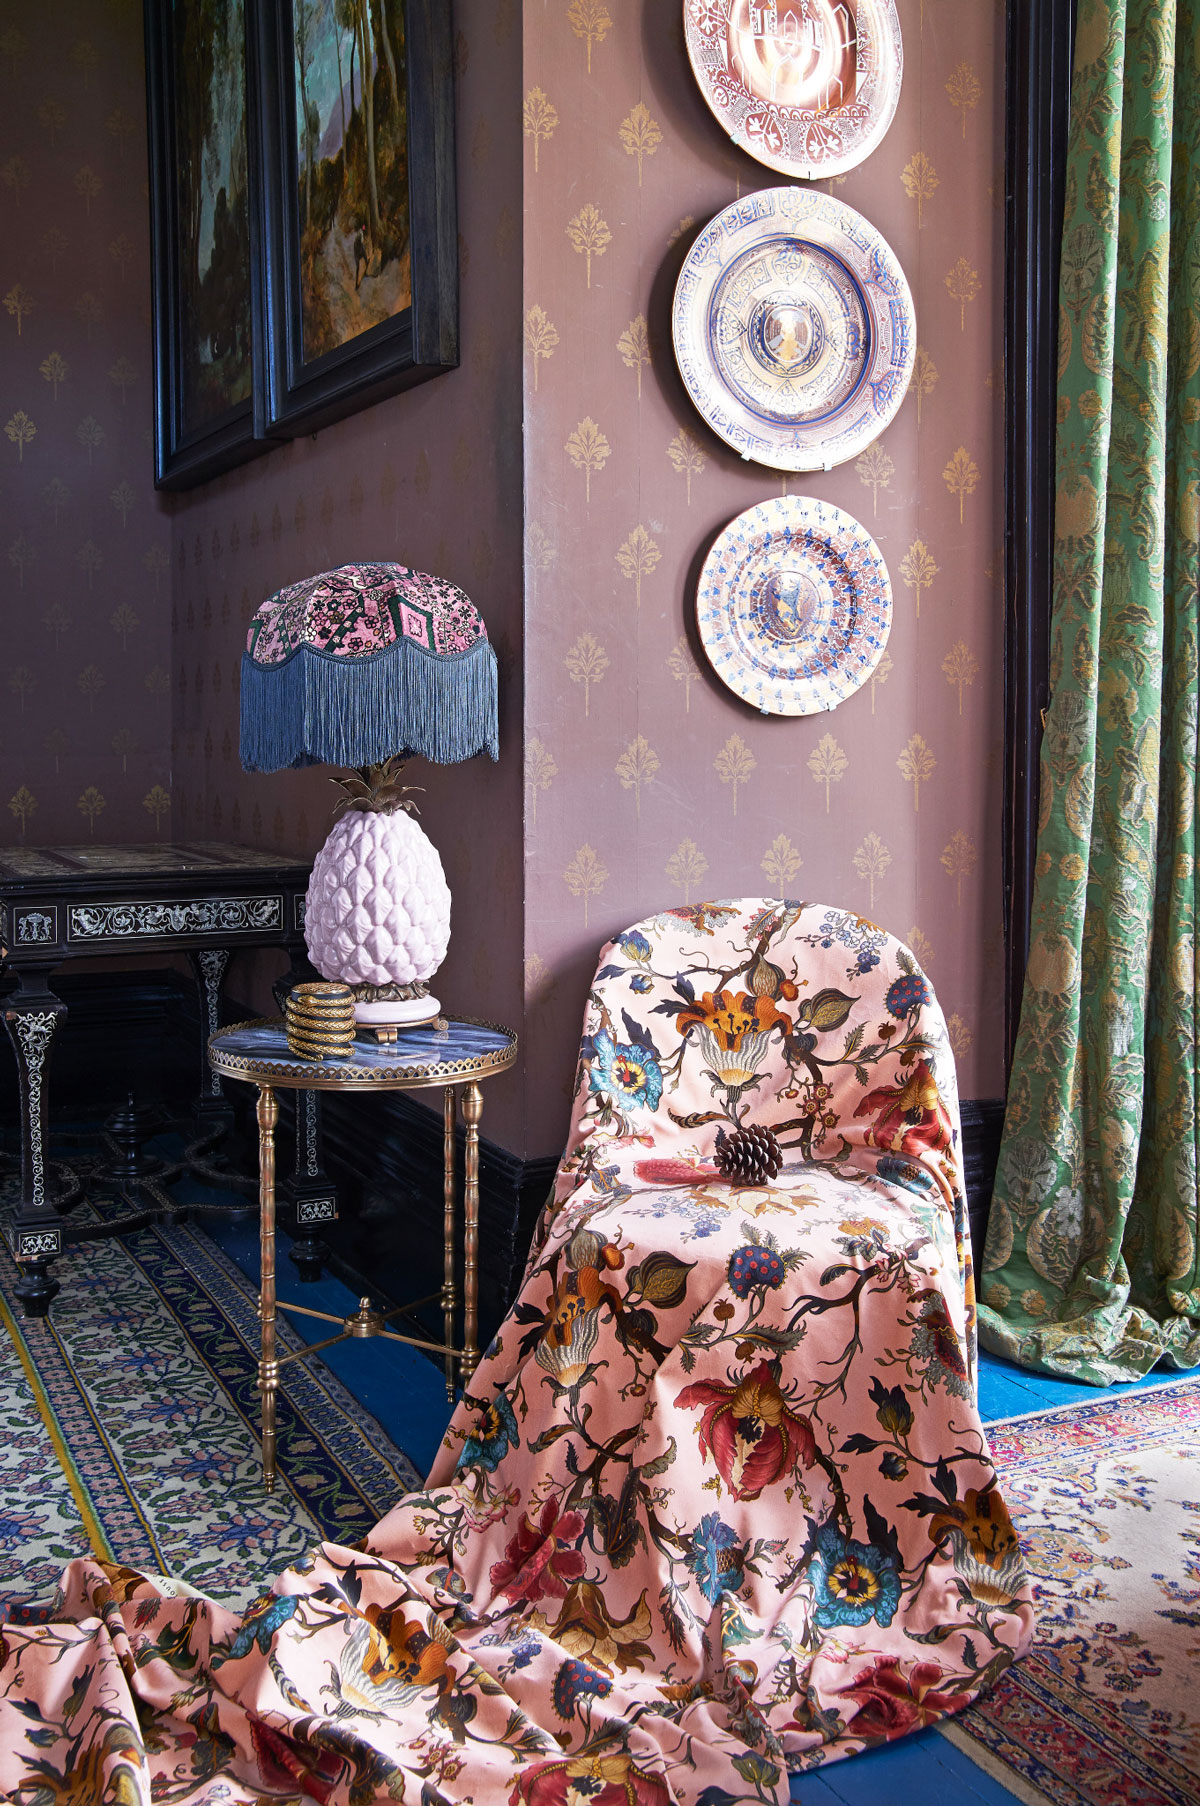 ... Hackney is unveiling a spectacular collection of wallpaper, fabric and home accessories in collaboration with historical French wallpaper house, Zuber.